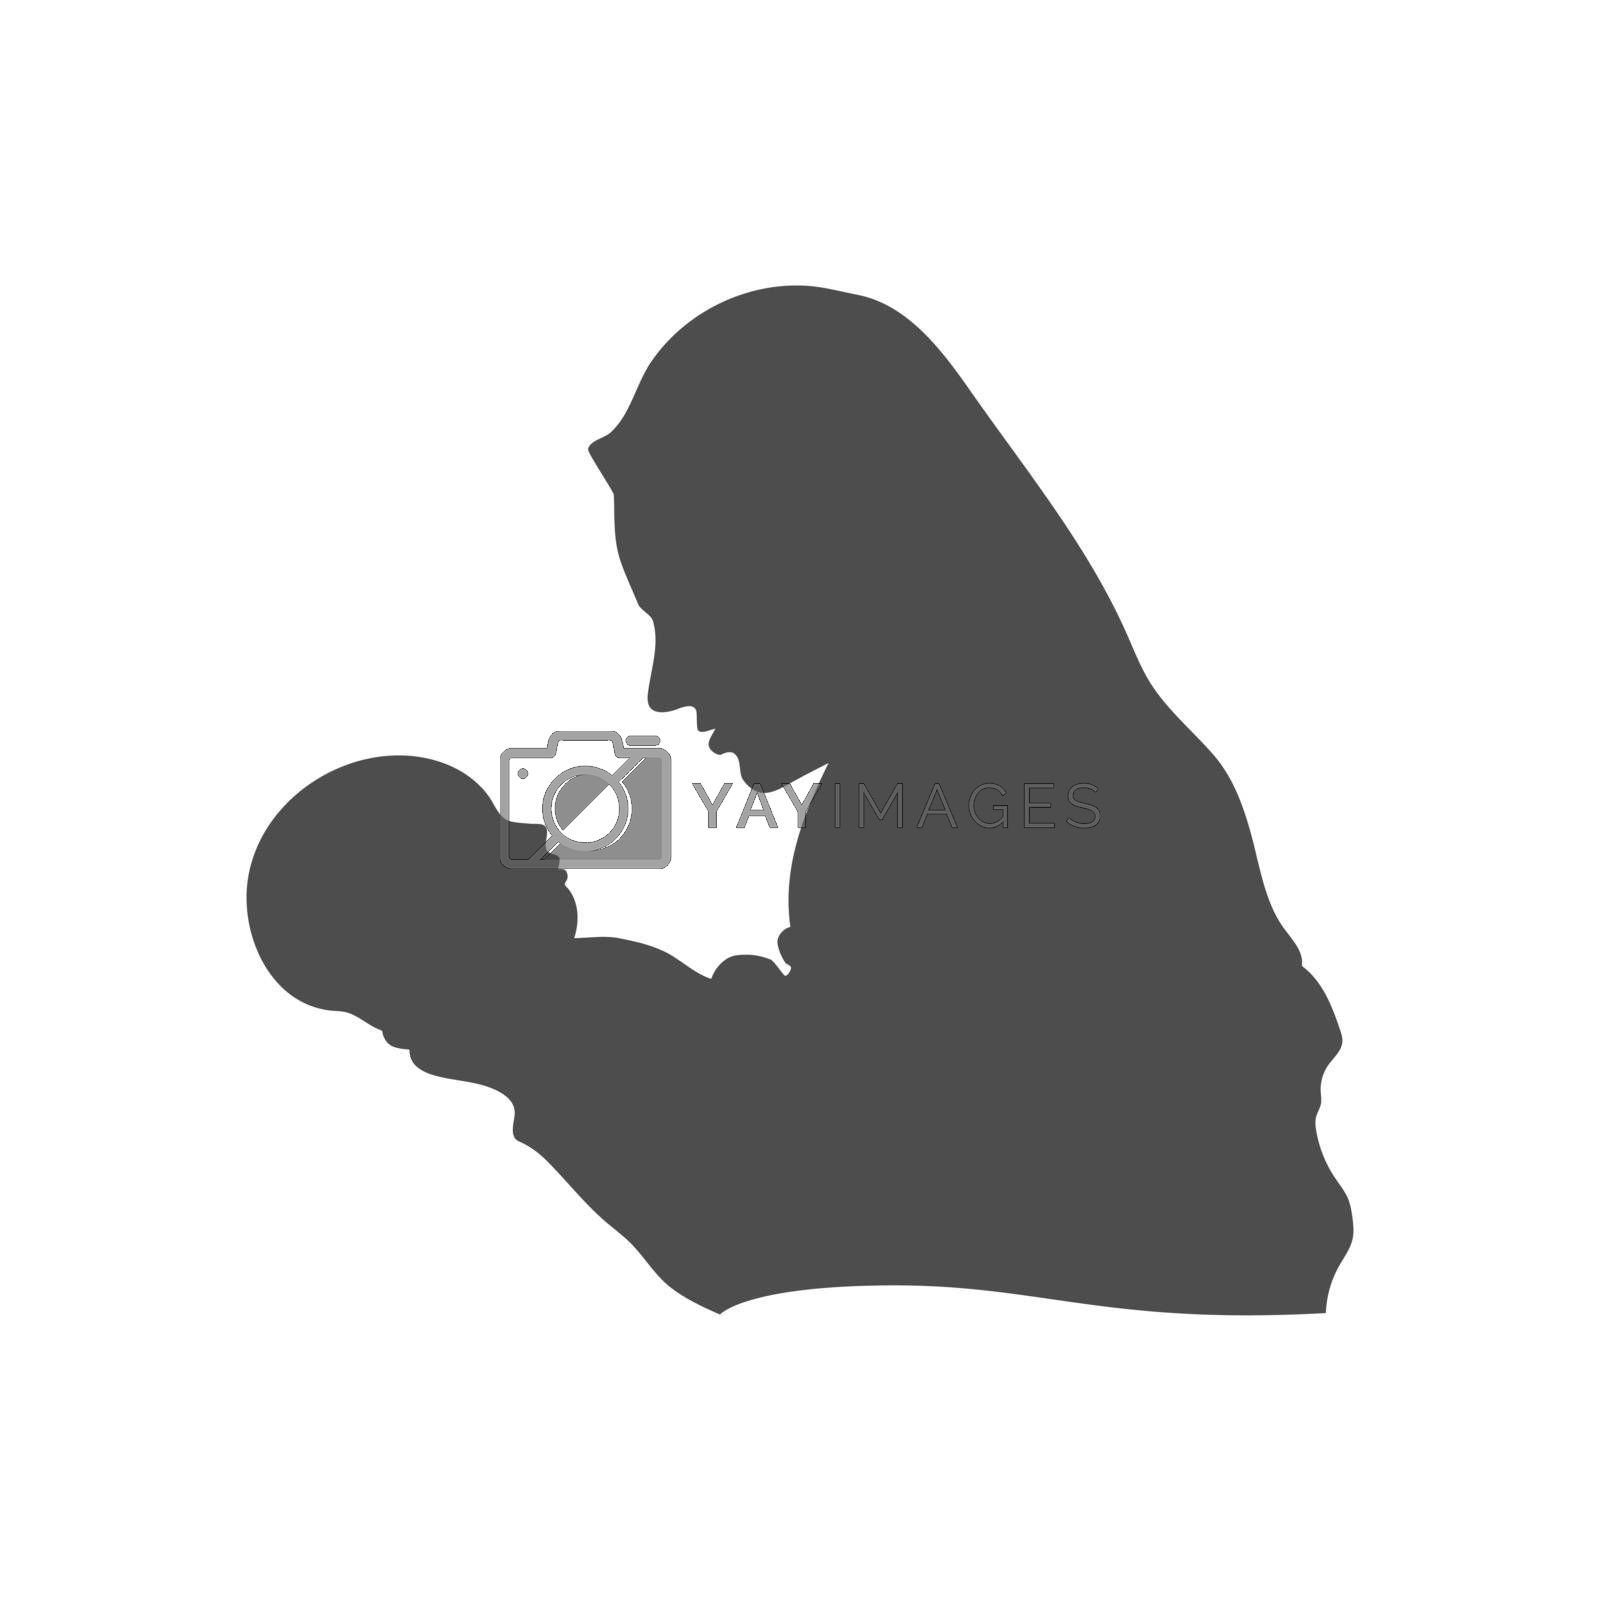 Silhouette of a woman and a baby. a woman holds a baby in her arms. Vector illustration, flat style.